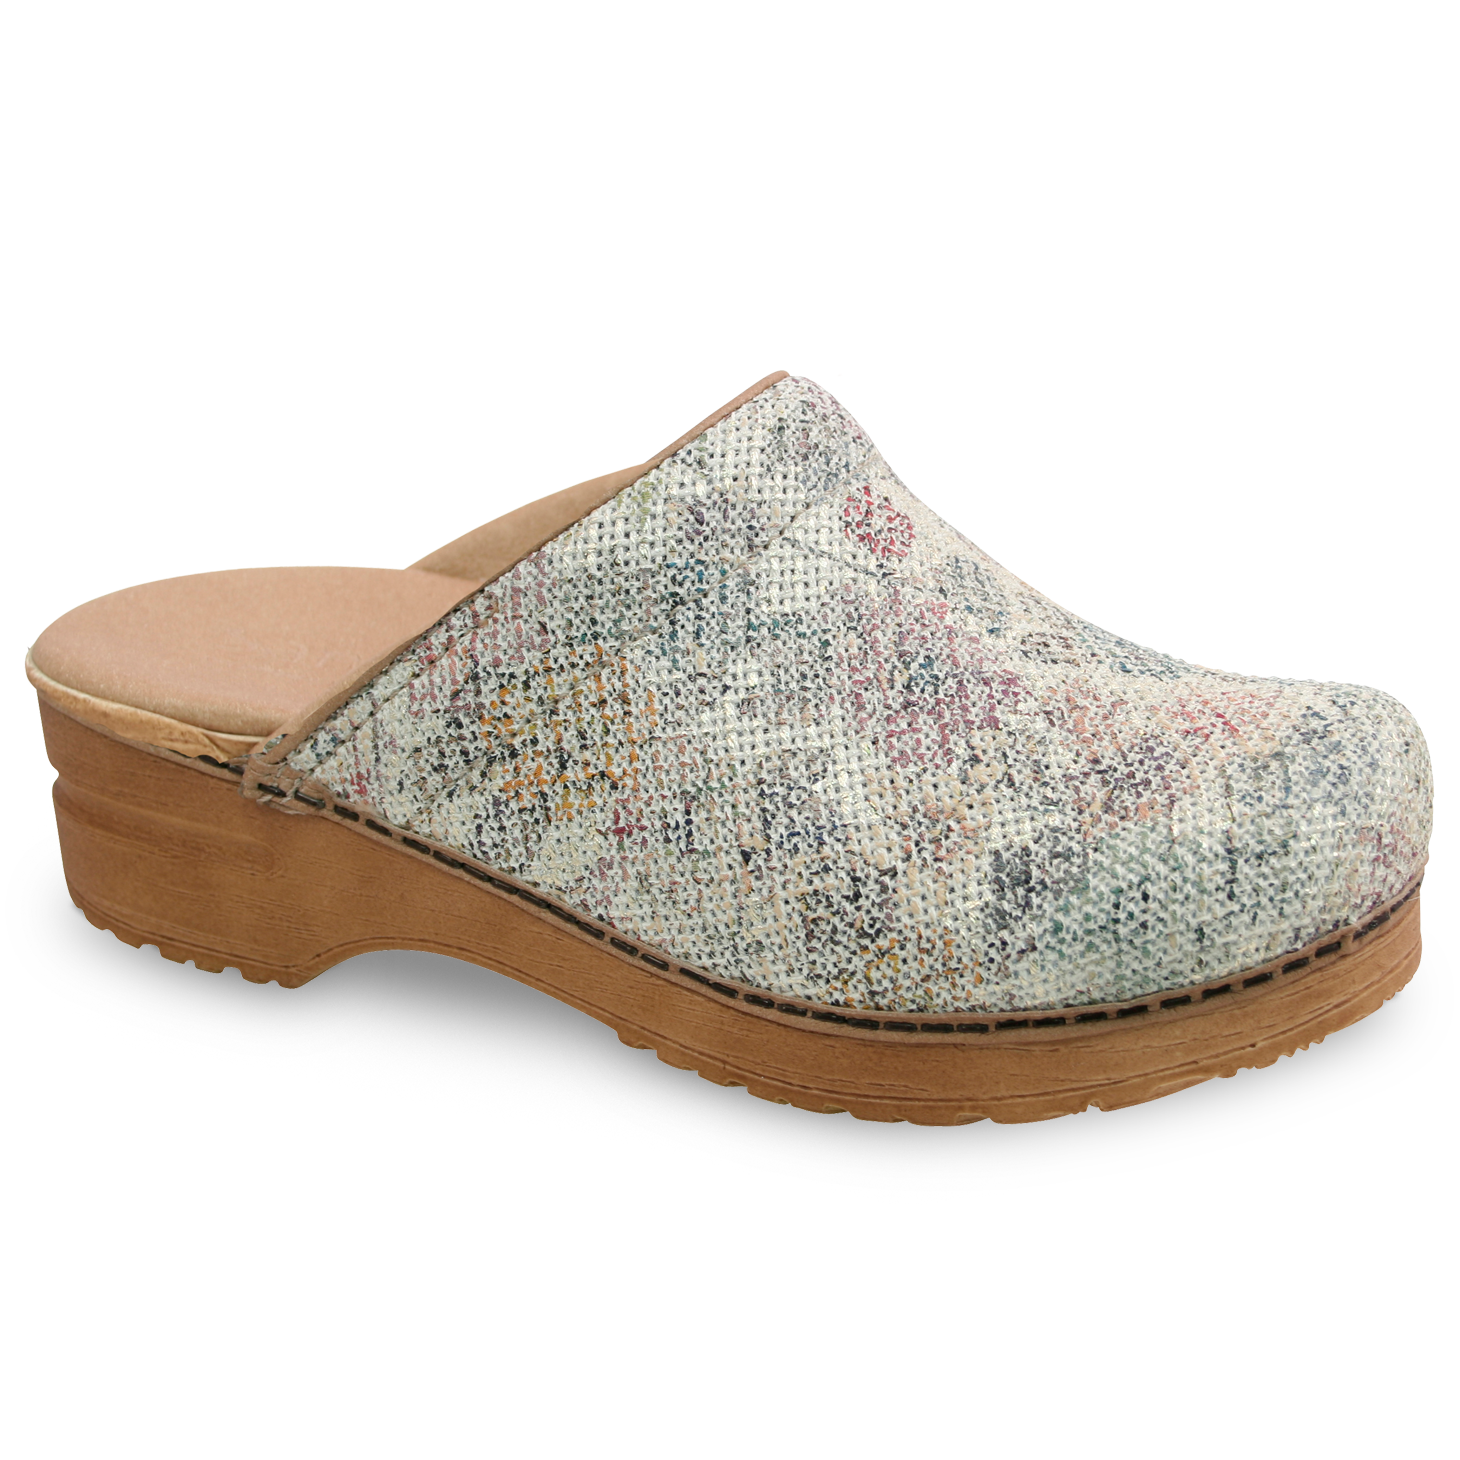 Sanita Stratton Women's Open Back Clog